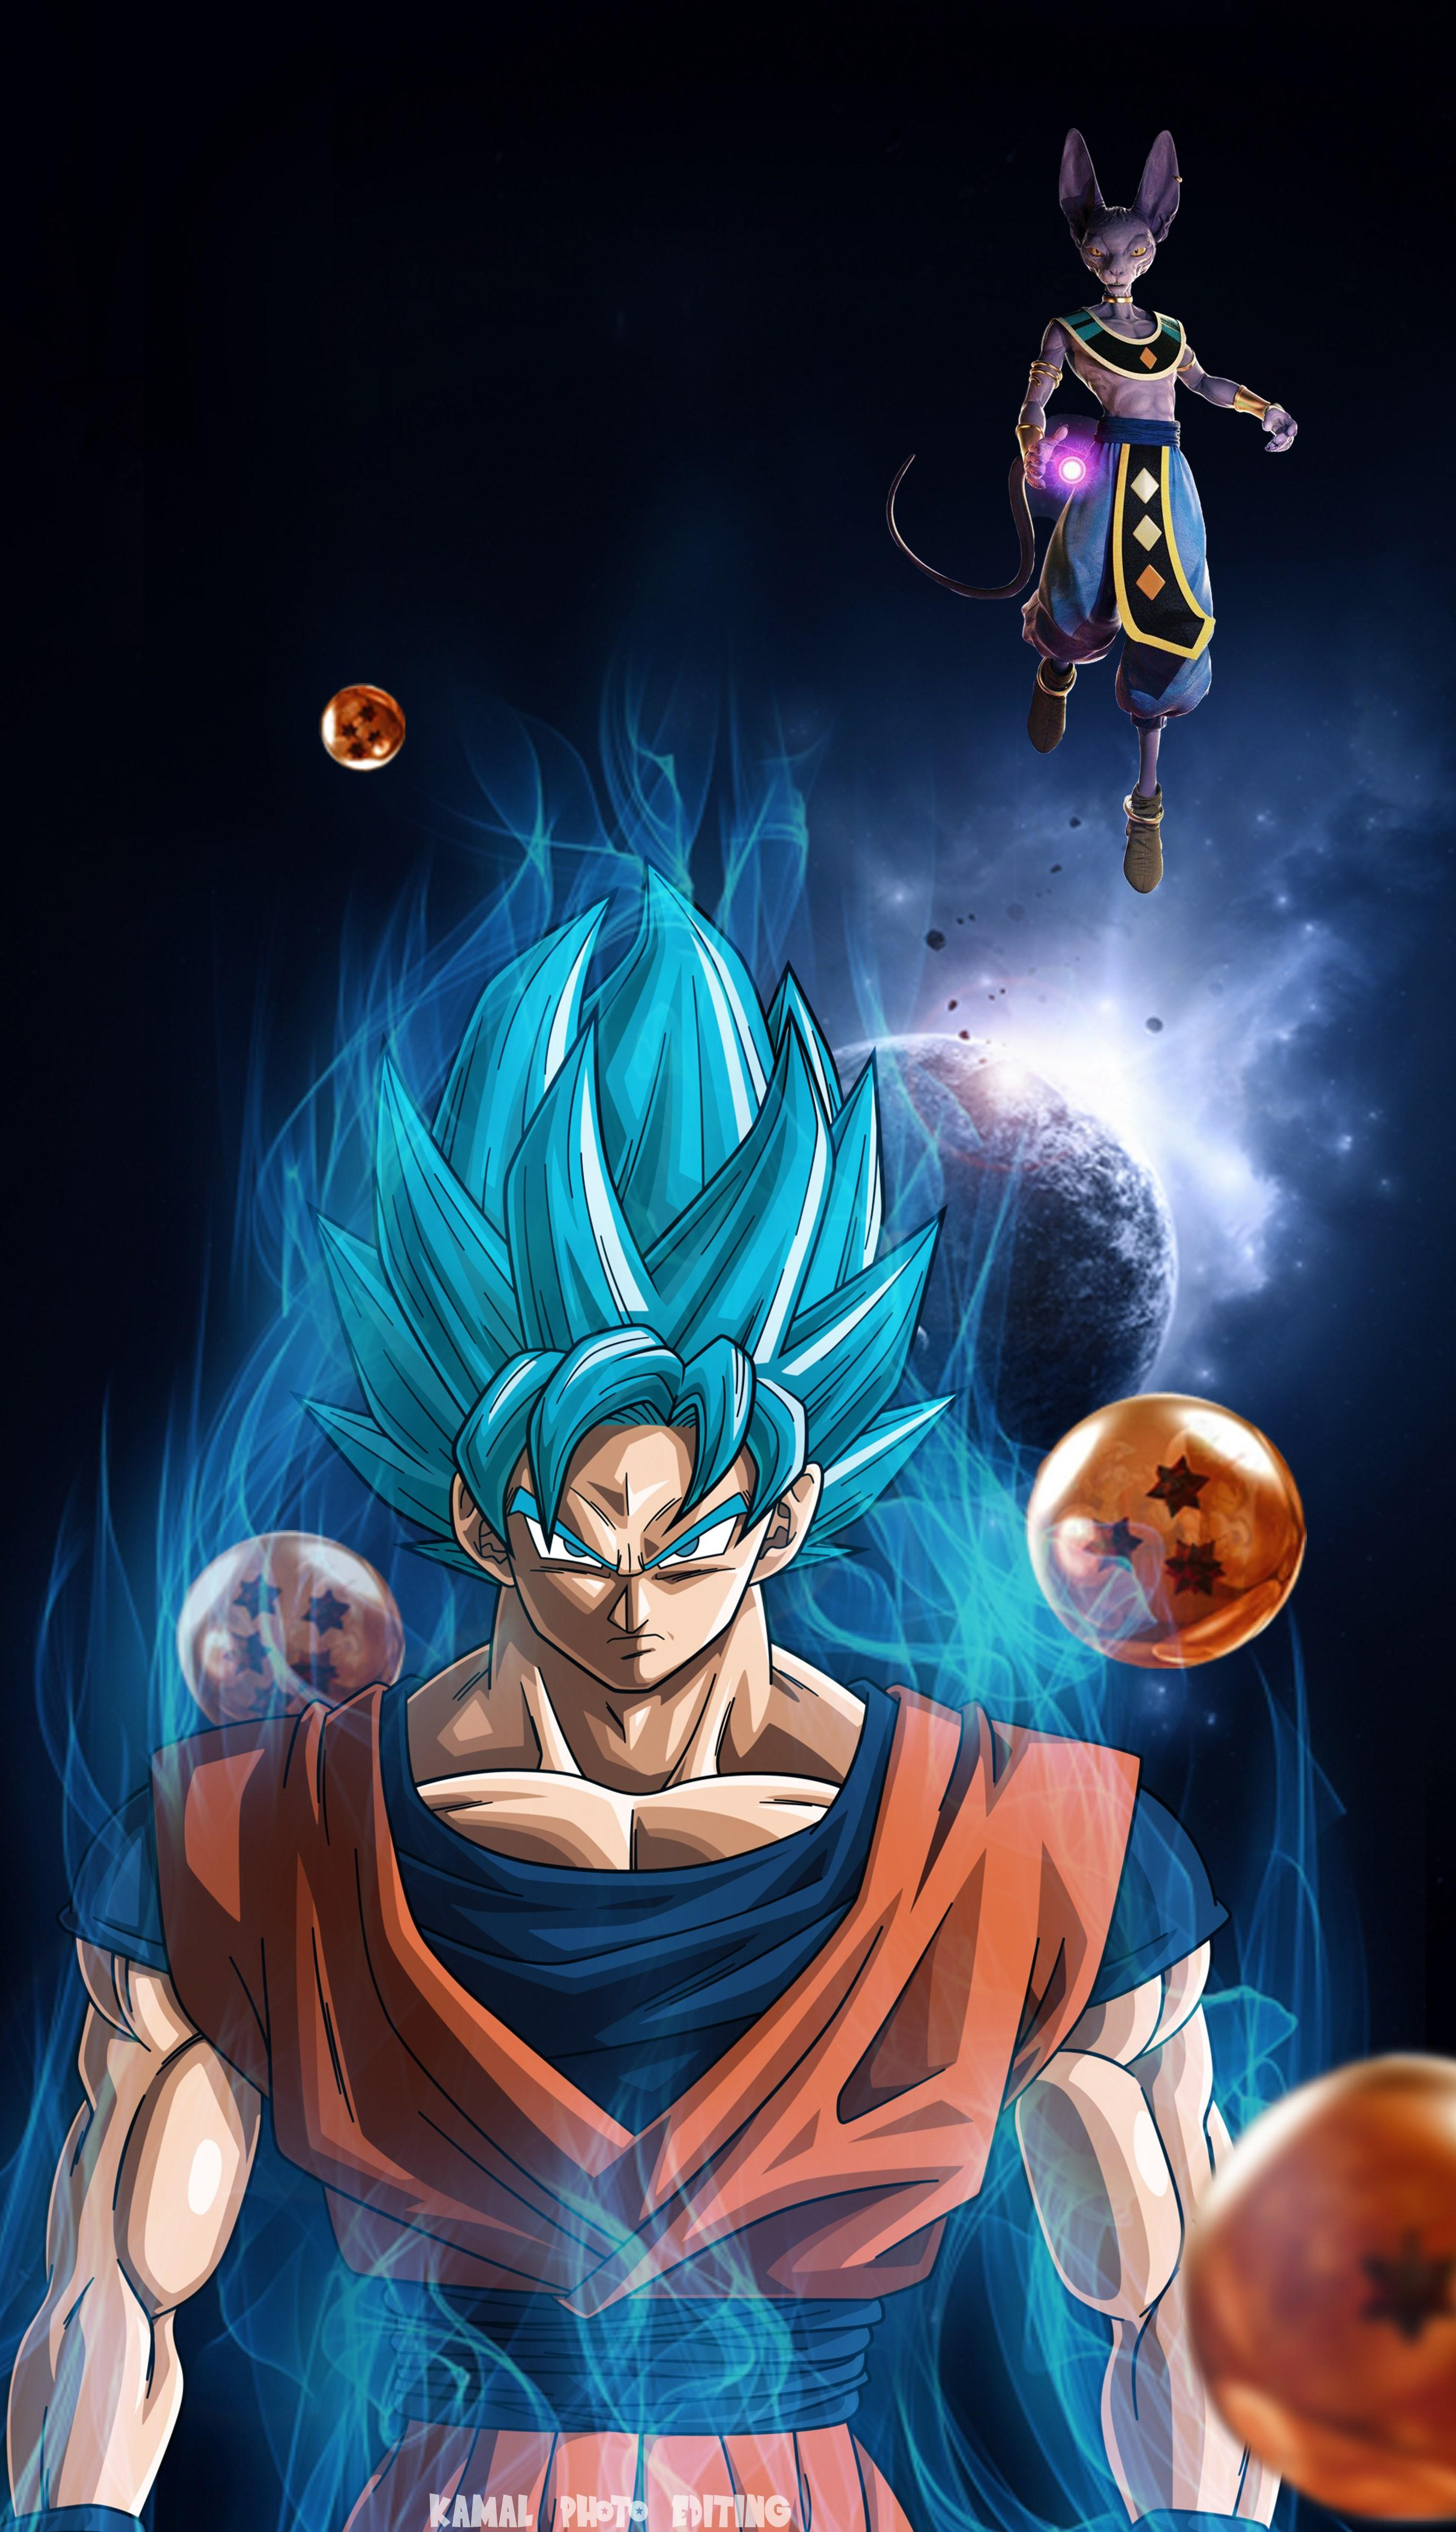 Anime Wallpaper Hd Dragon Ball Z Live Wallpapers Iphone